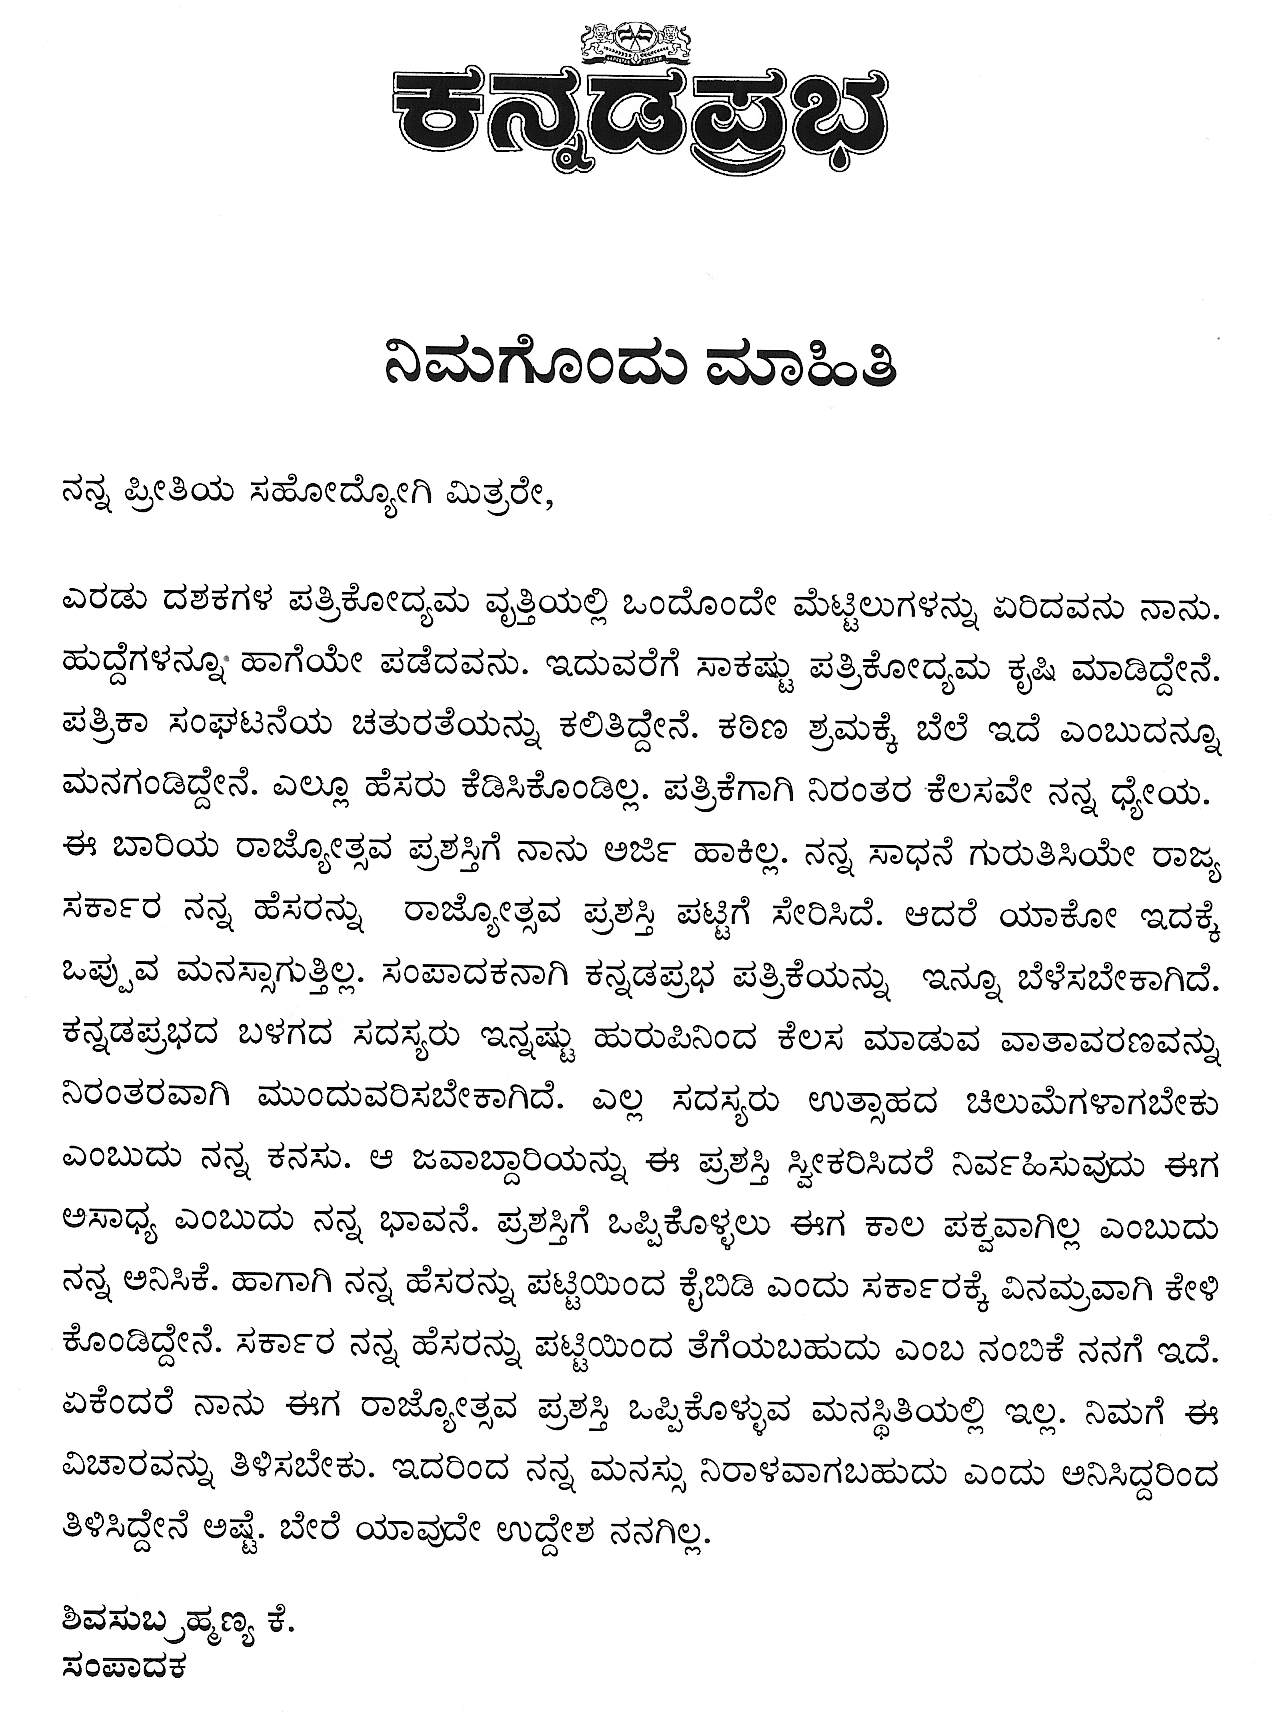 Short essay on jawaharlal nehru in malayalam